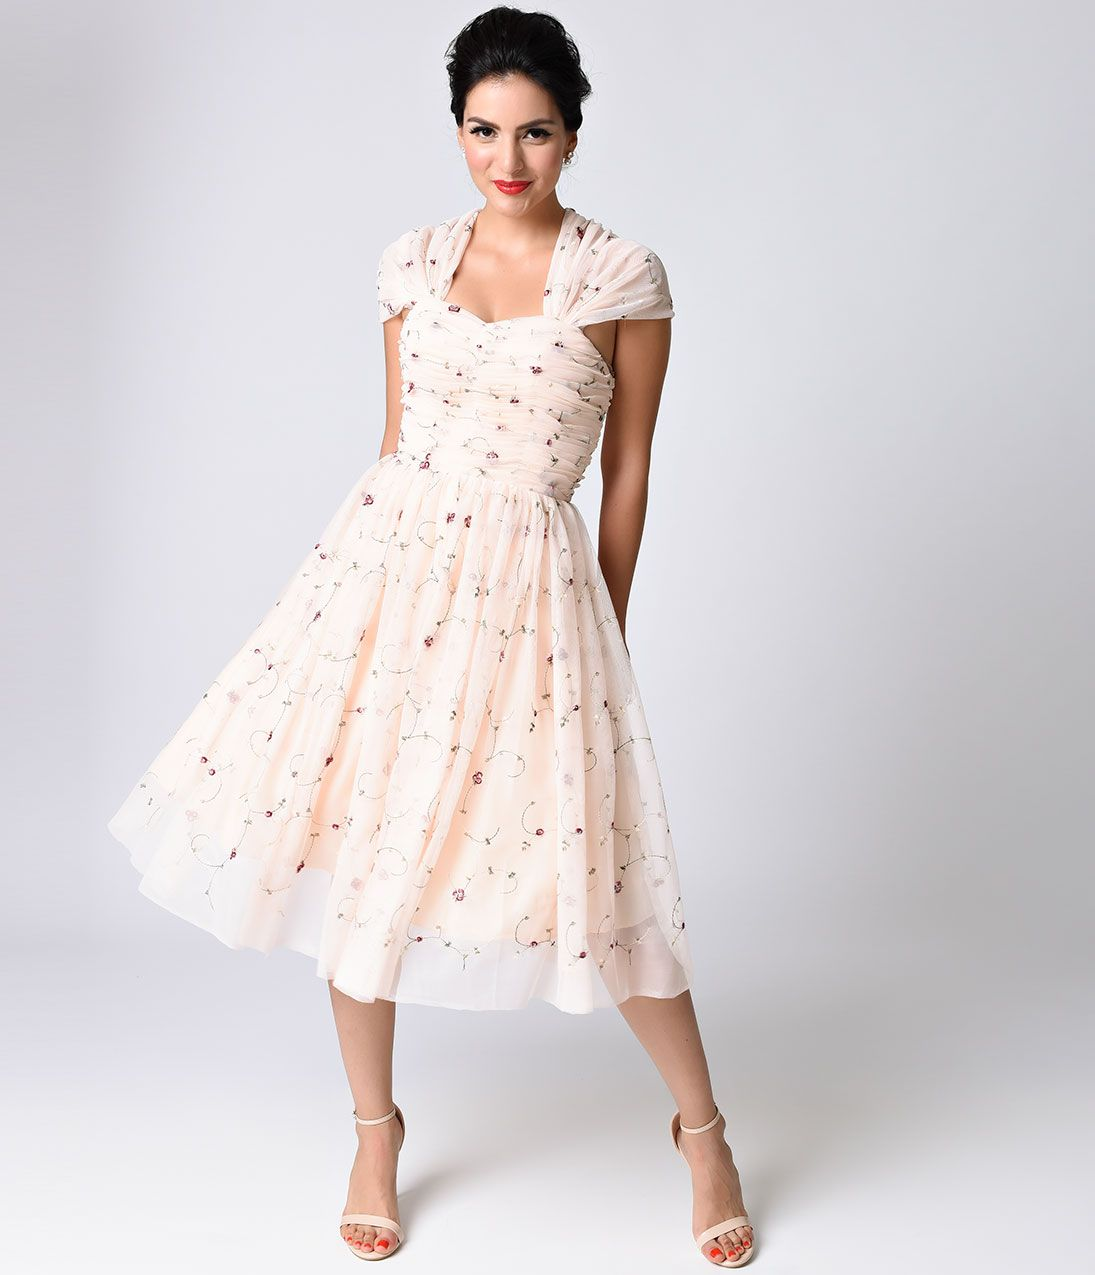 1960s Style Cocktail, Prom, Formal Dresses Cheap